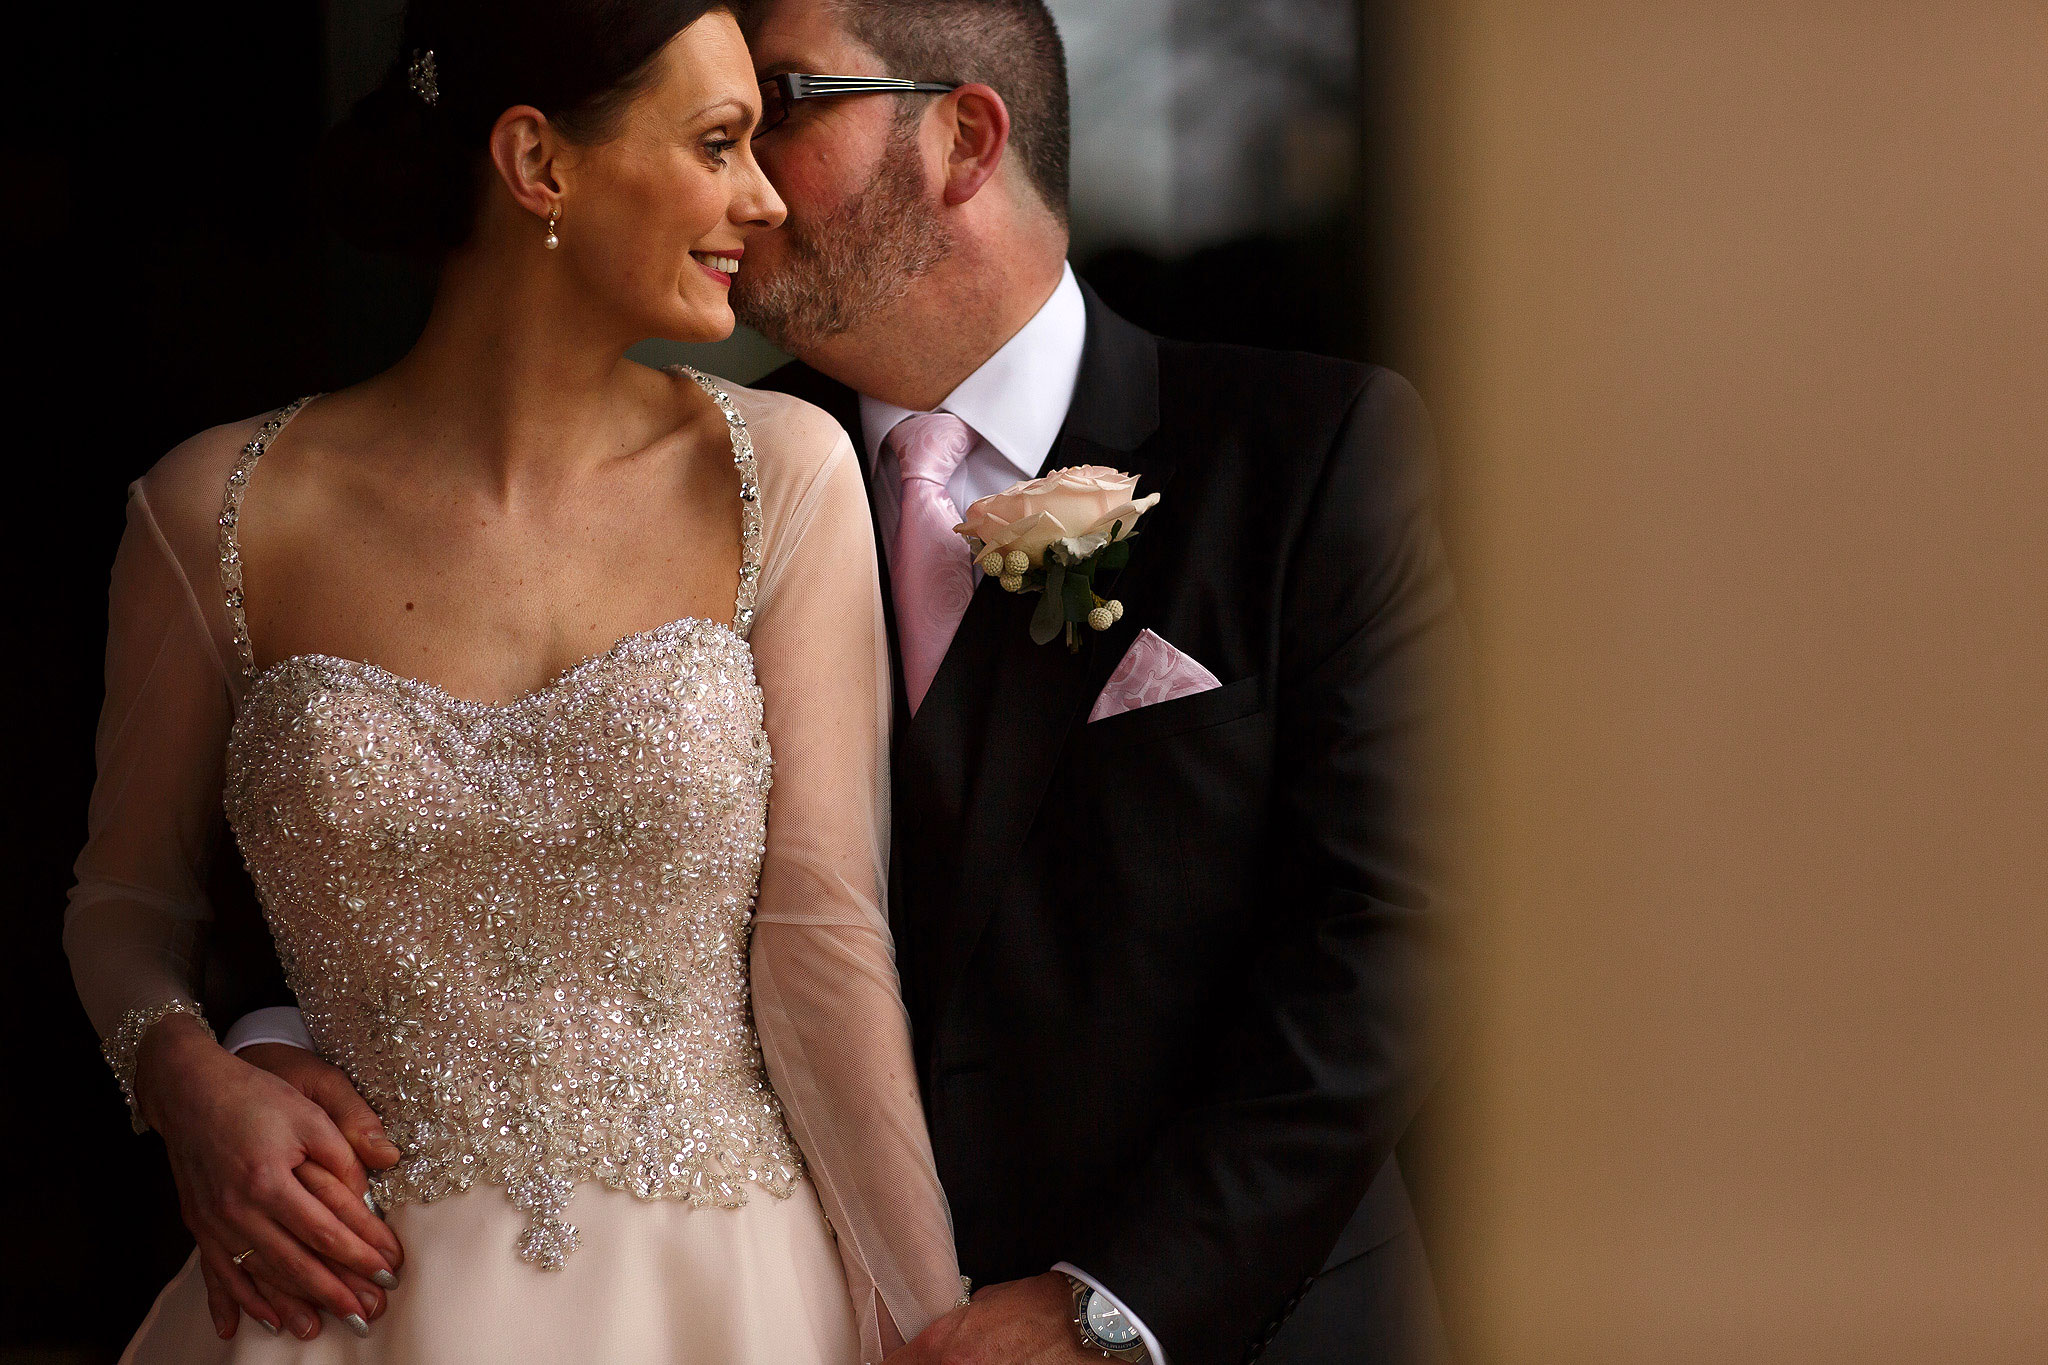 Bride wearing long sleeved pink wedding dress and groom with pink tie cuddling close during wedding portraits at Stanley House Hotel